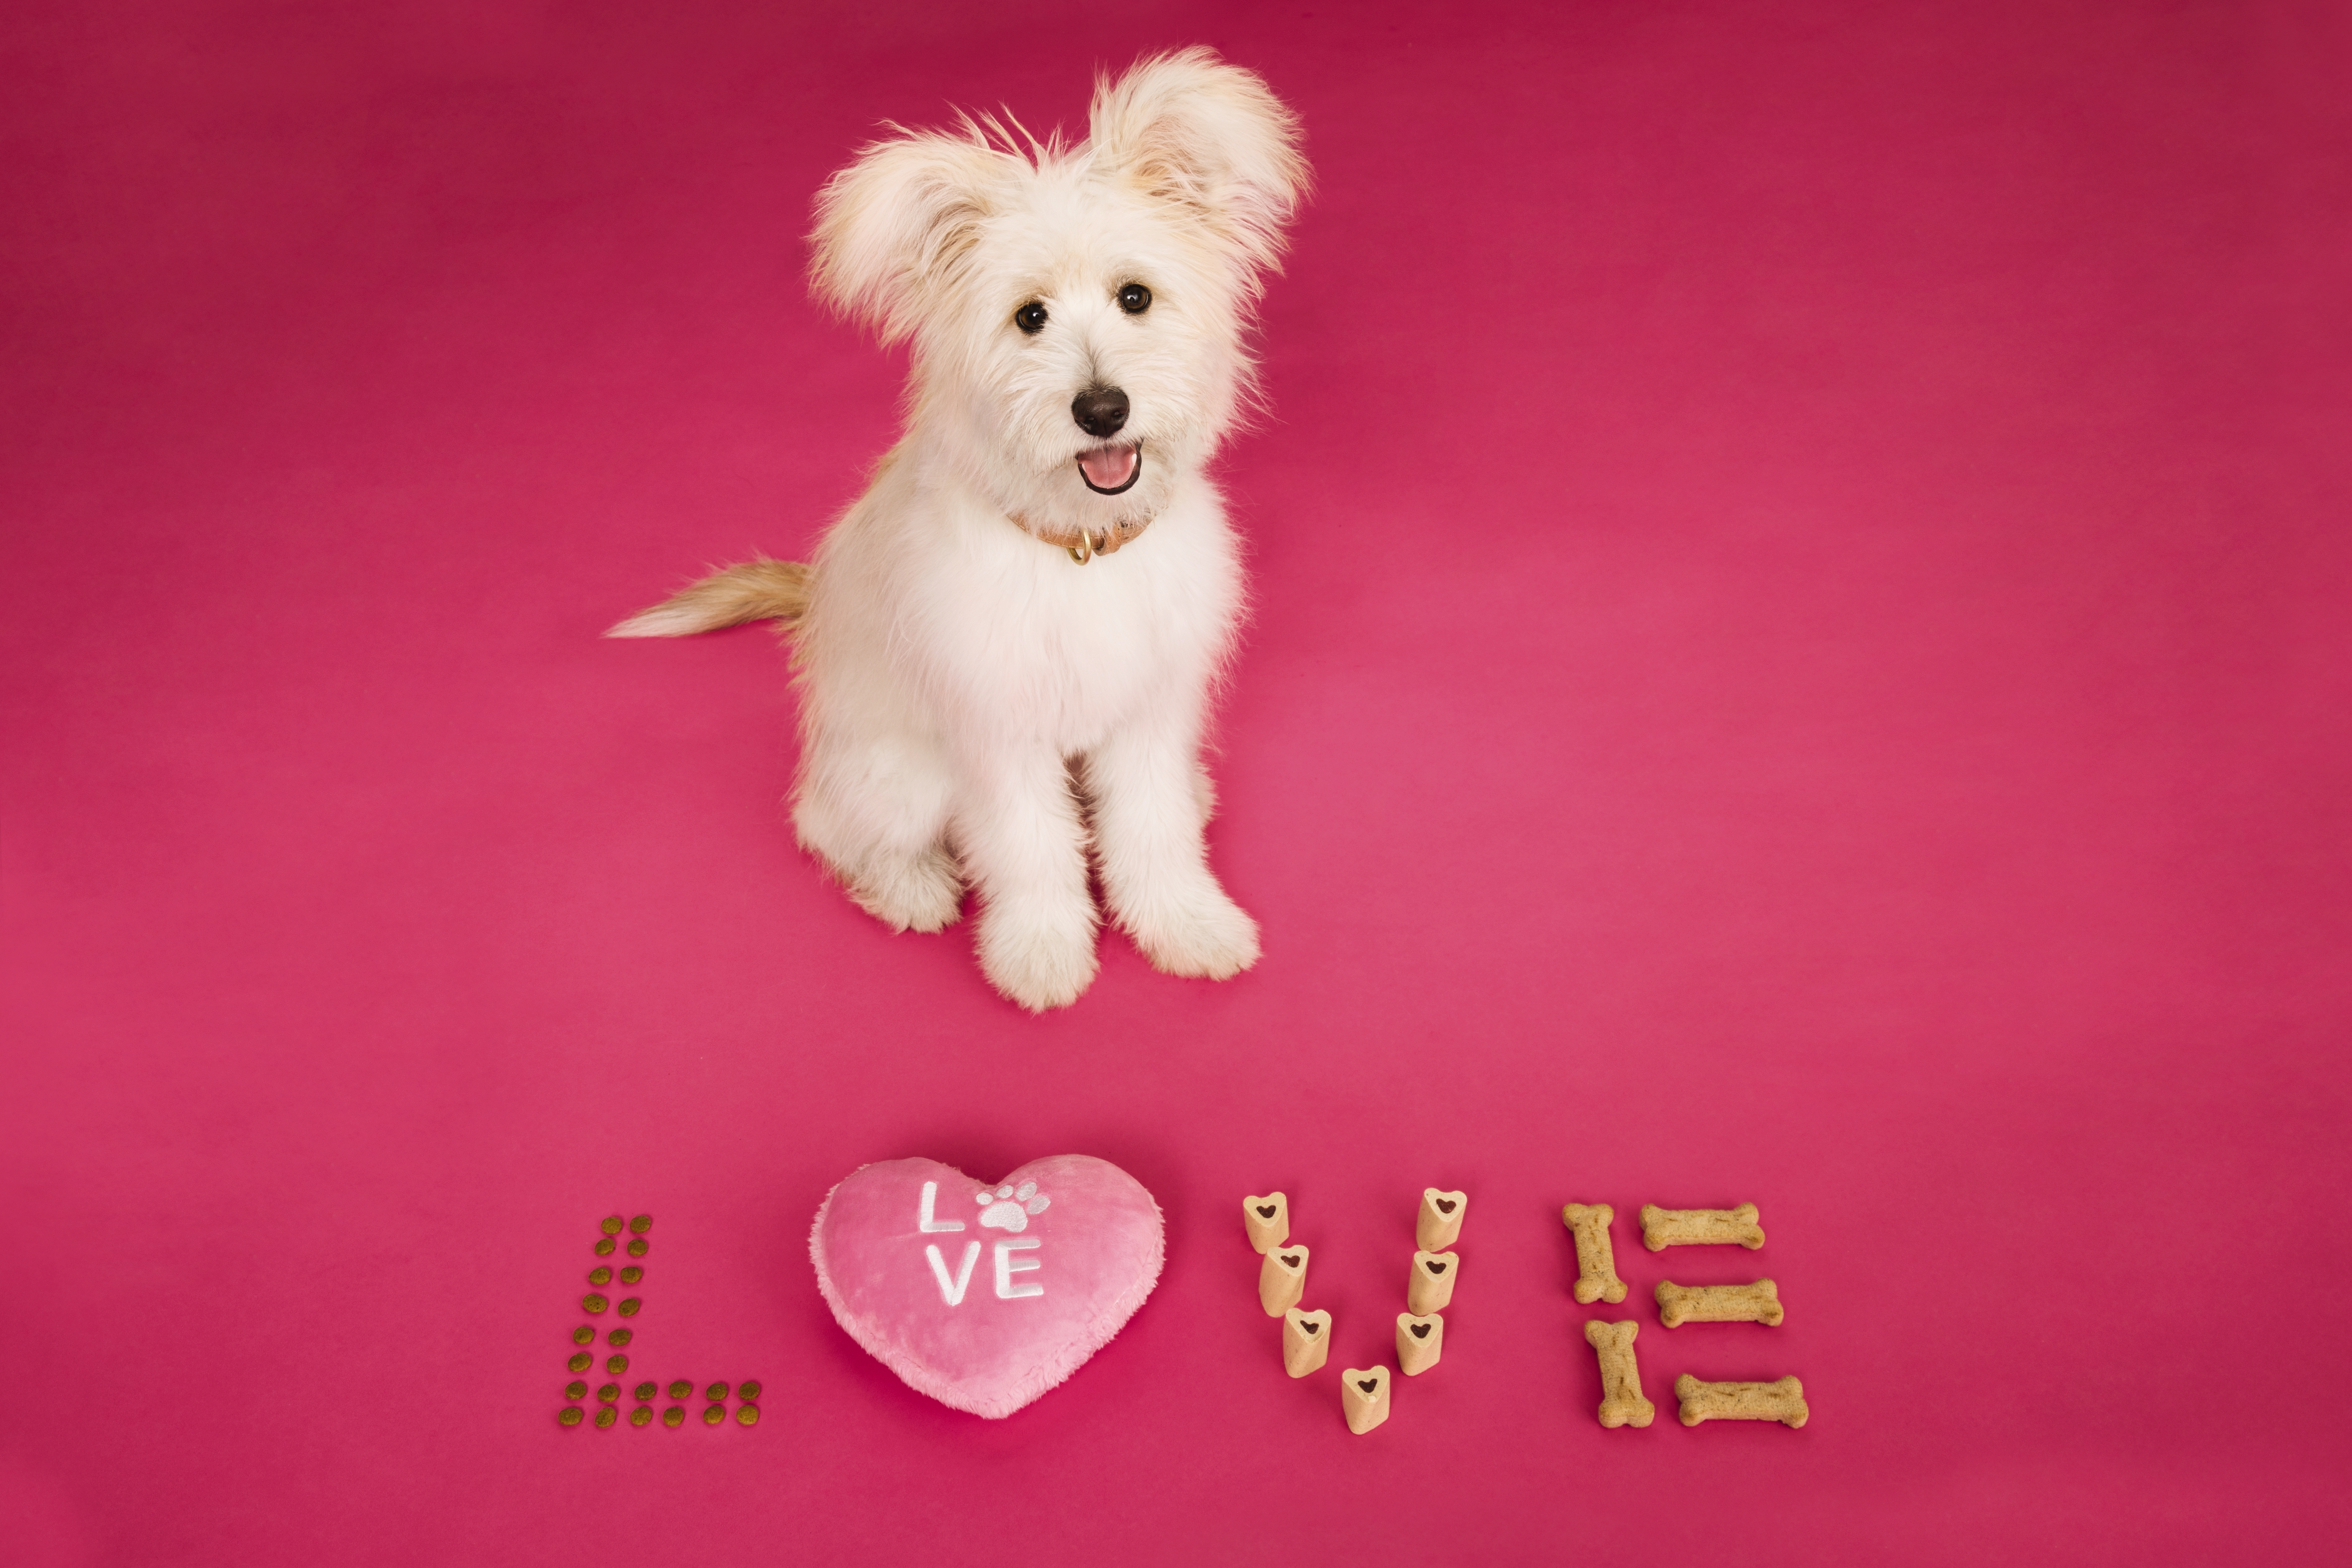 PetSmart® Enhances Its Valentineu0027s Day Collection To Include More Ways For  Pet Parents To Show Love, Celebrate With Their Pets | Business Wire